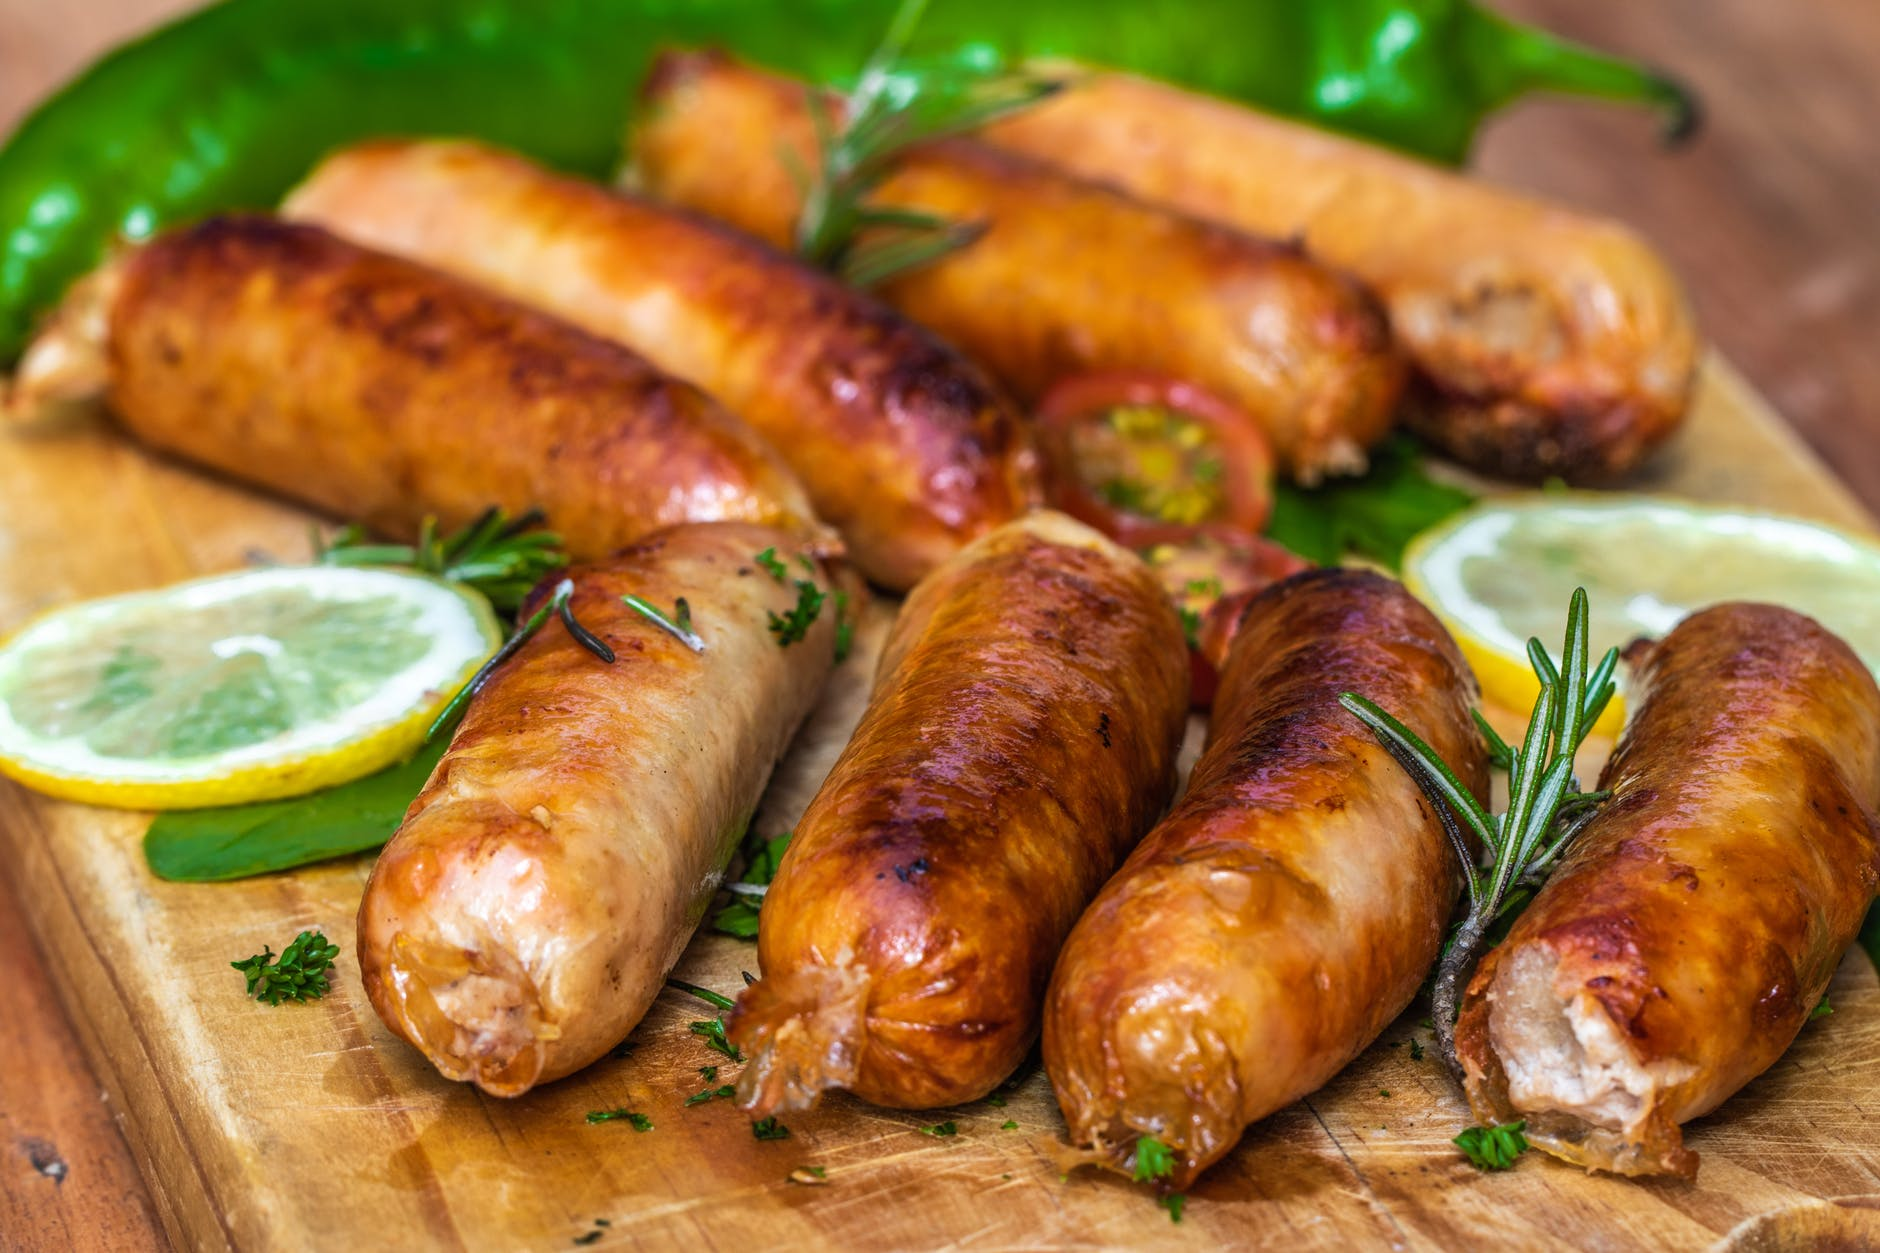 cooked sausages in close up view